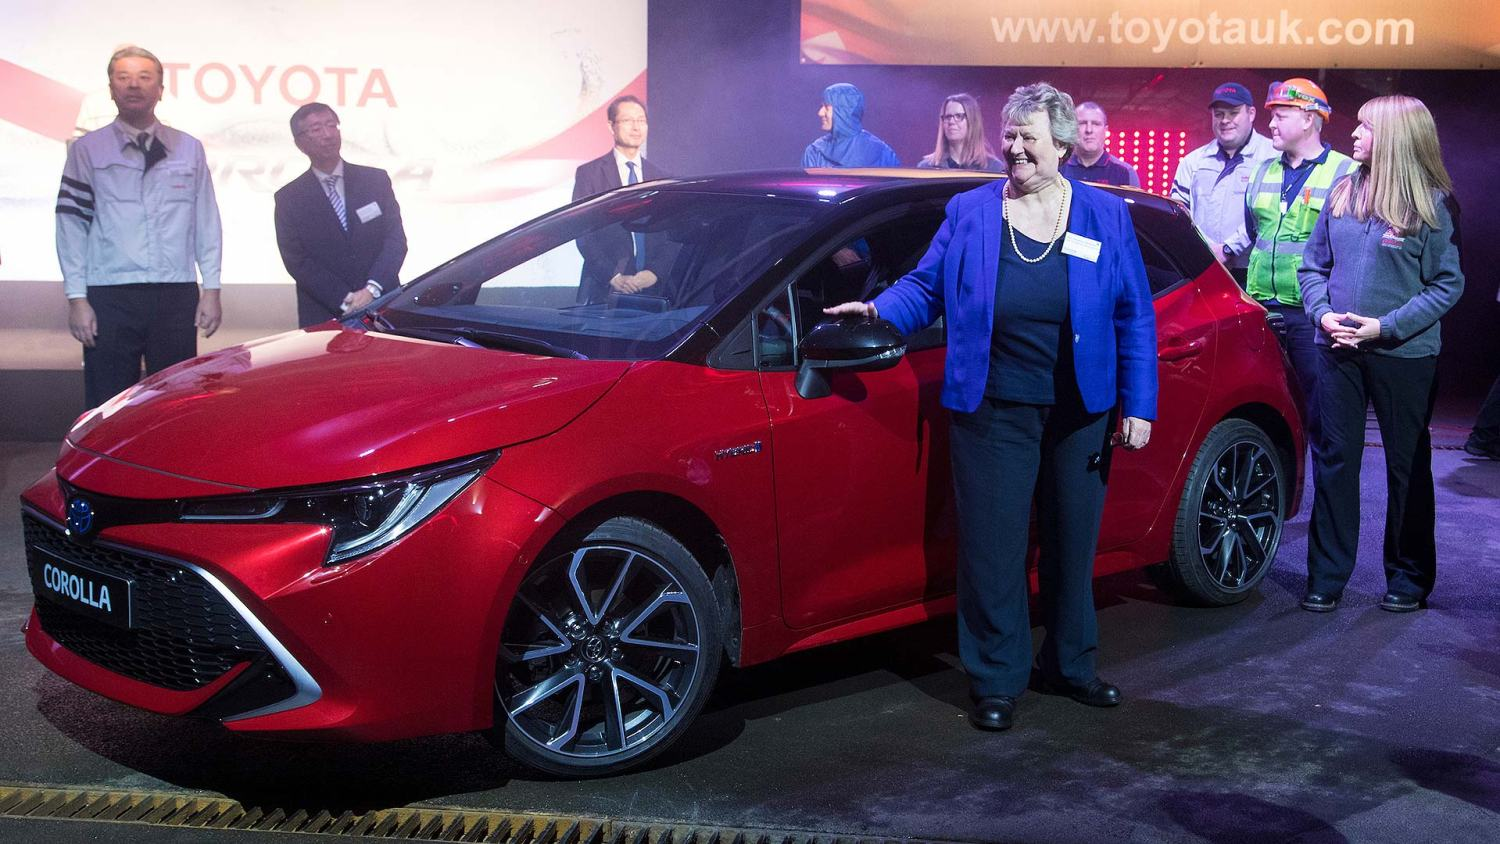 New 2019 Toyota Corolla start of production ceremony